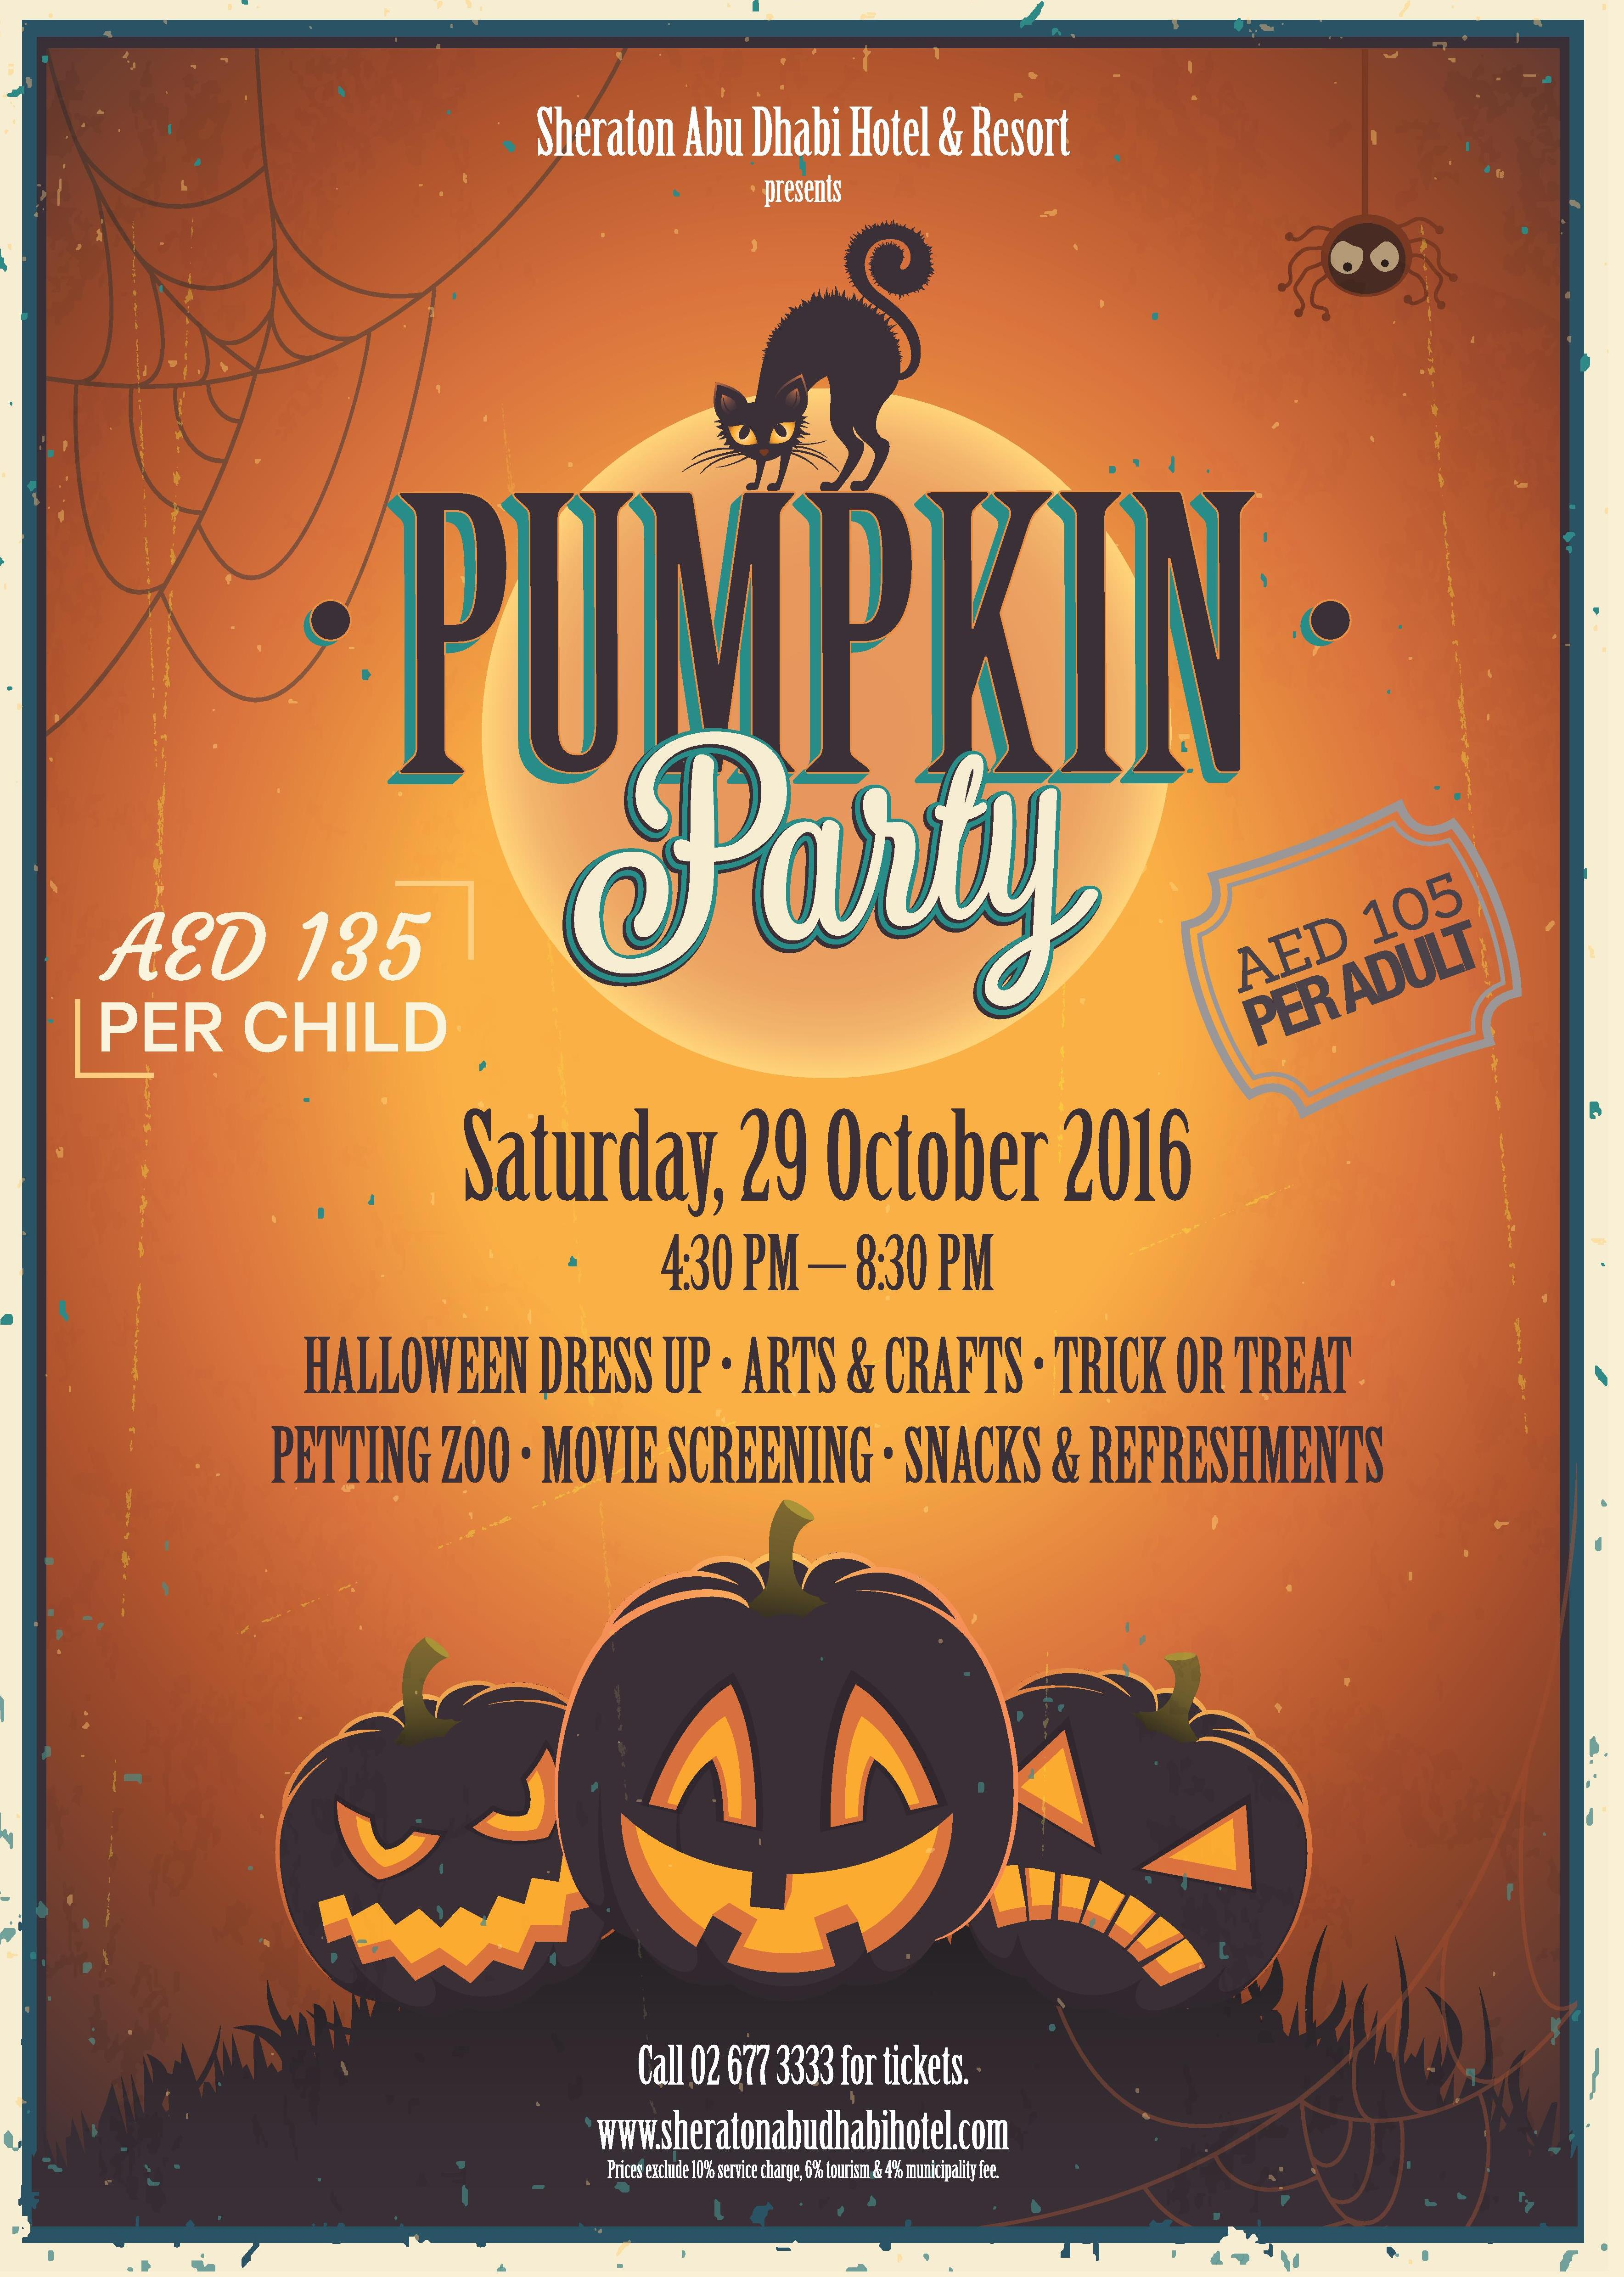 Pumpkin Party by Sheraton Abu Dhabi hotel & resort | UAE MOMS | #1 Social Community Group for all Women in UAE